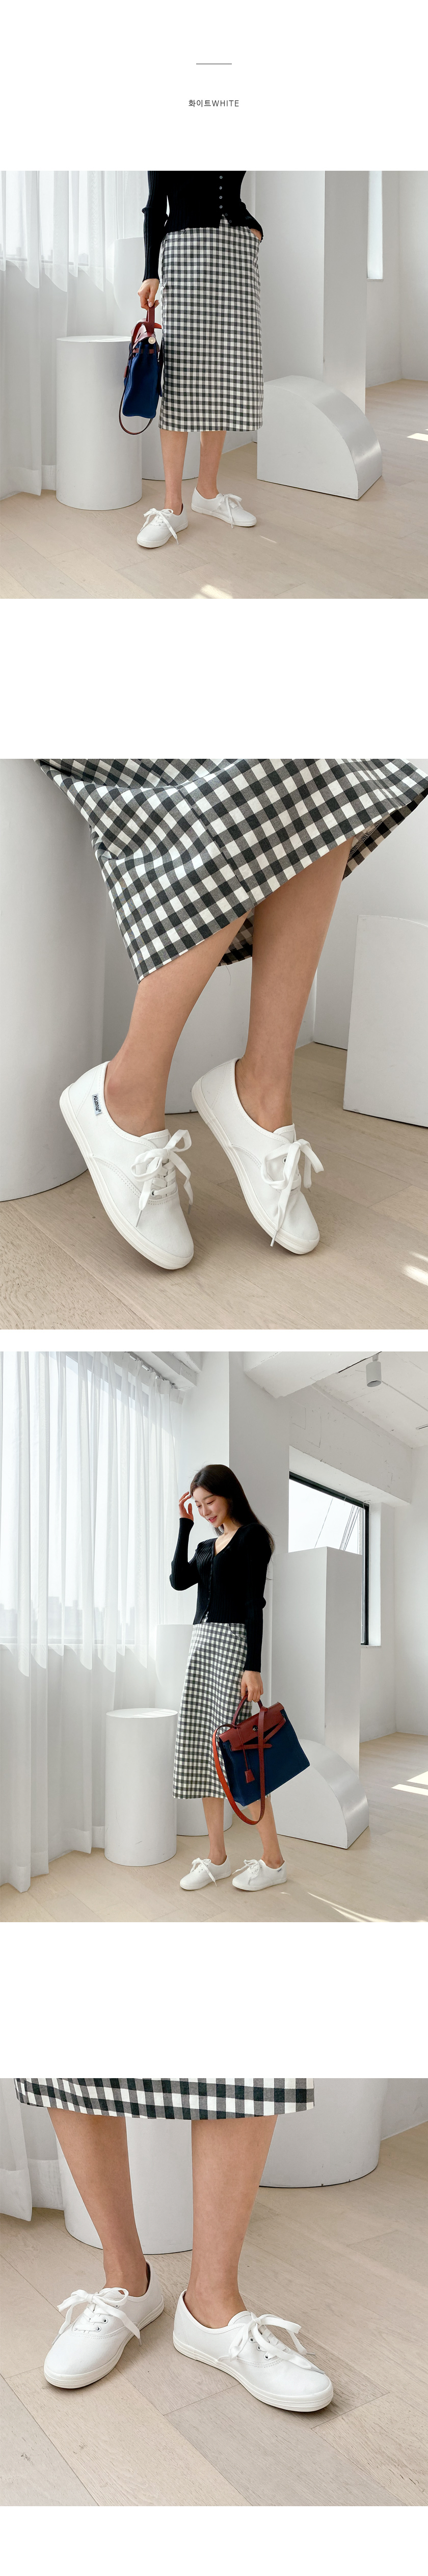 Polon Basic lace-up sneakers